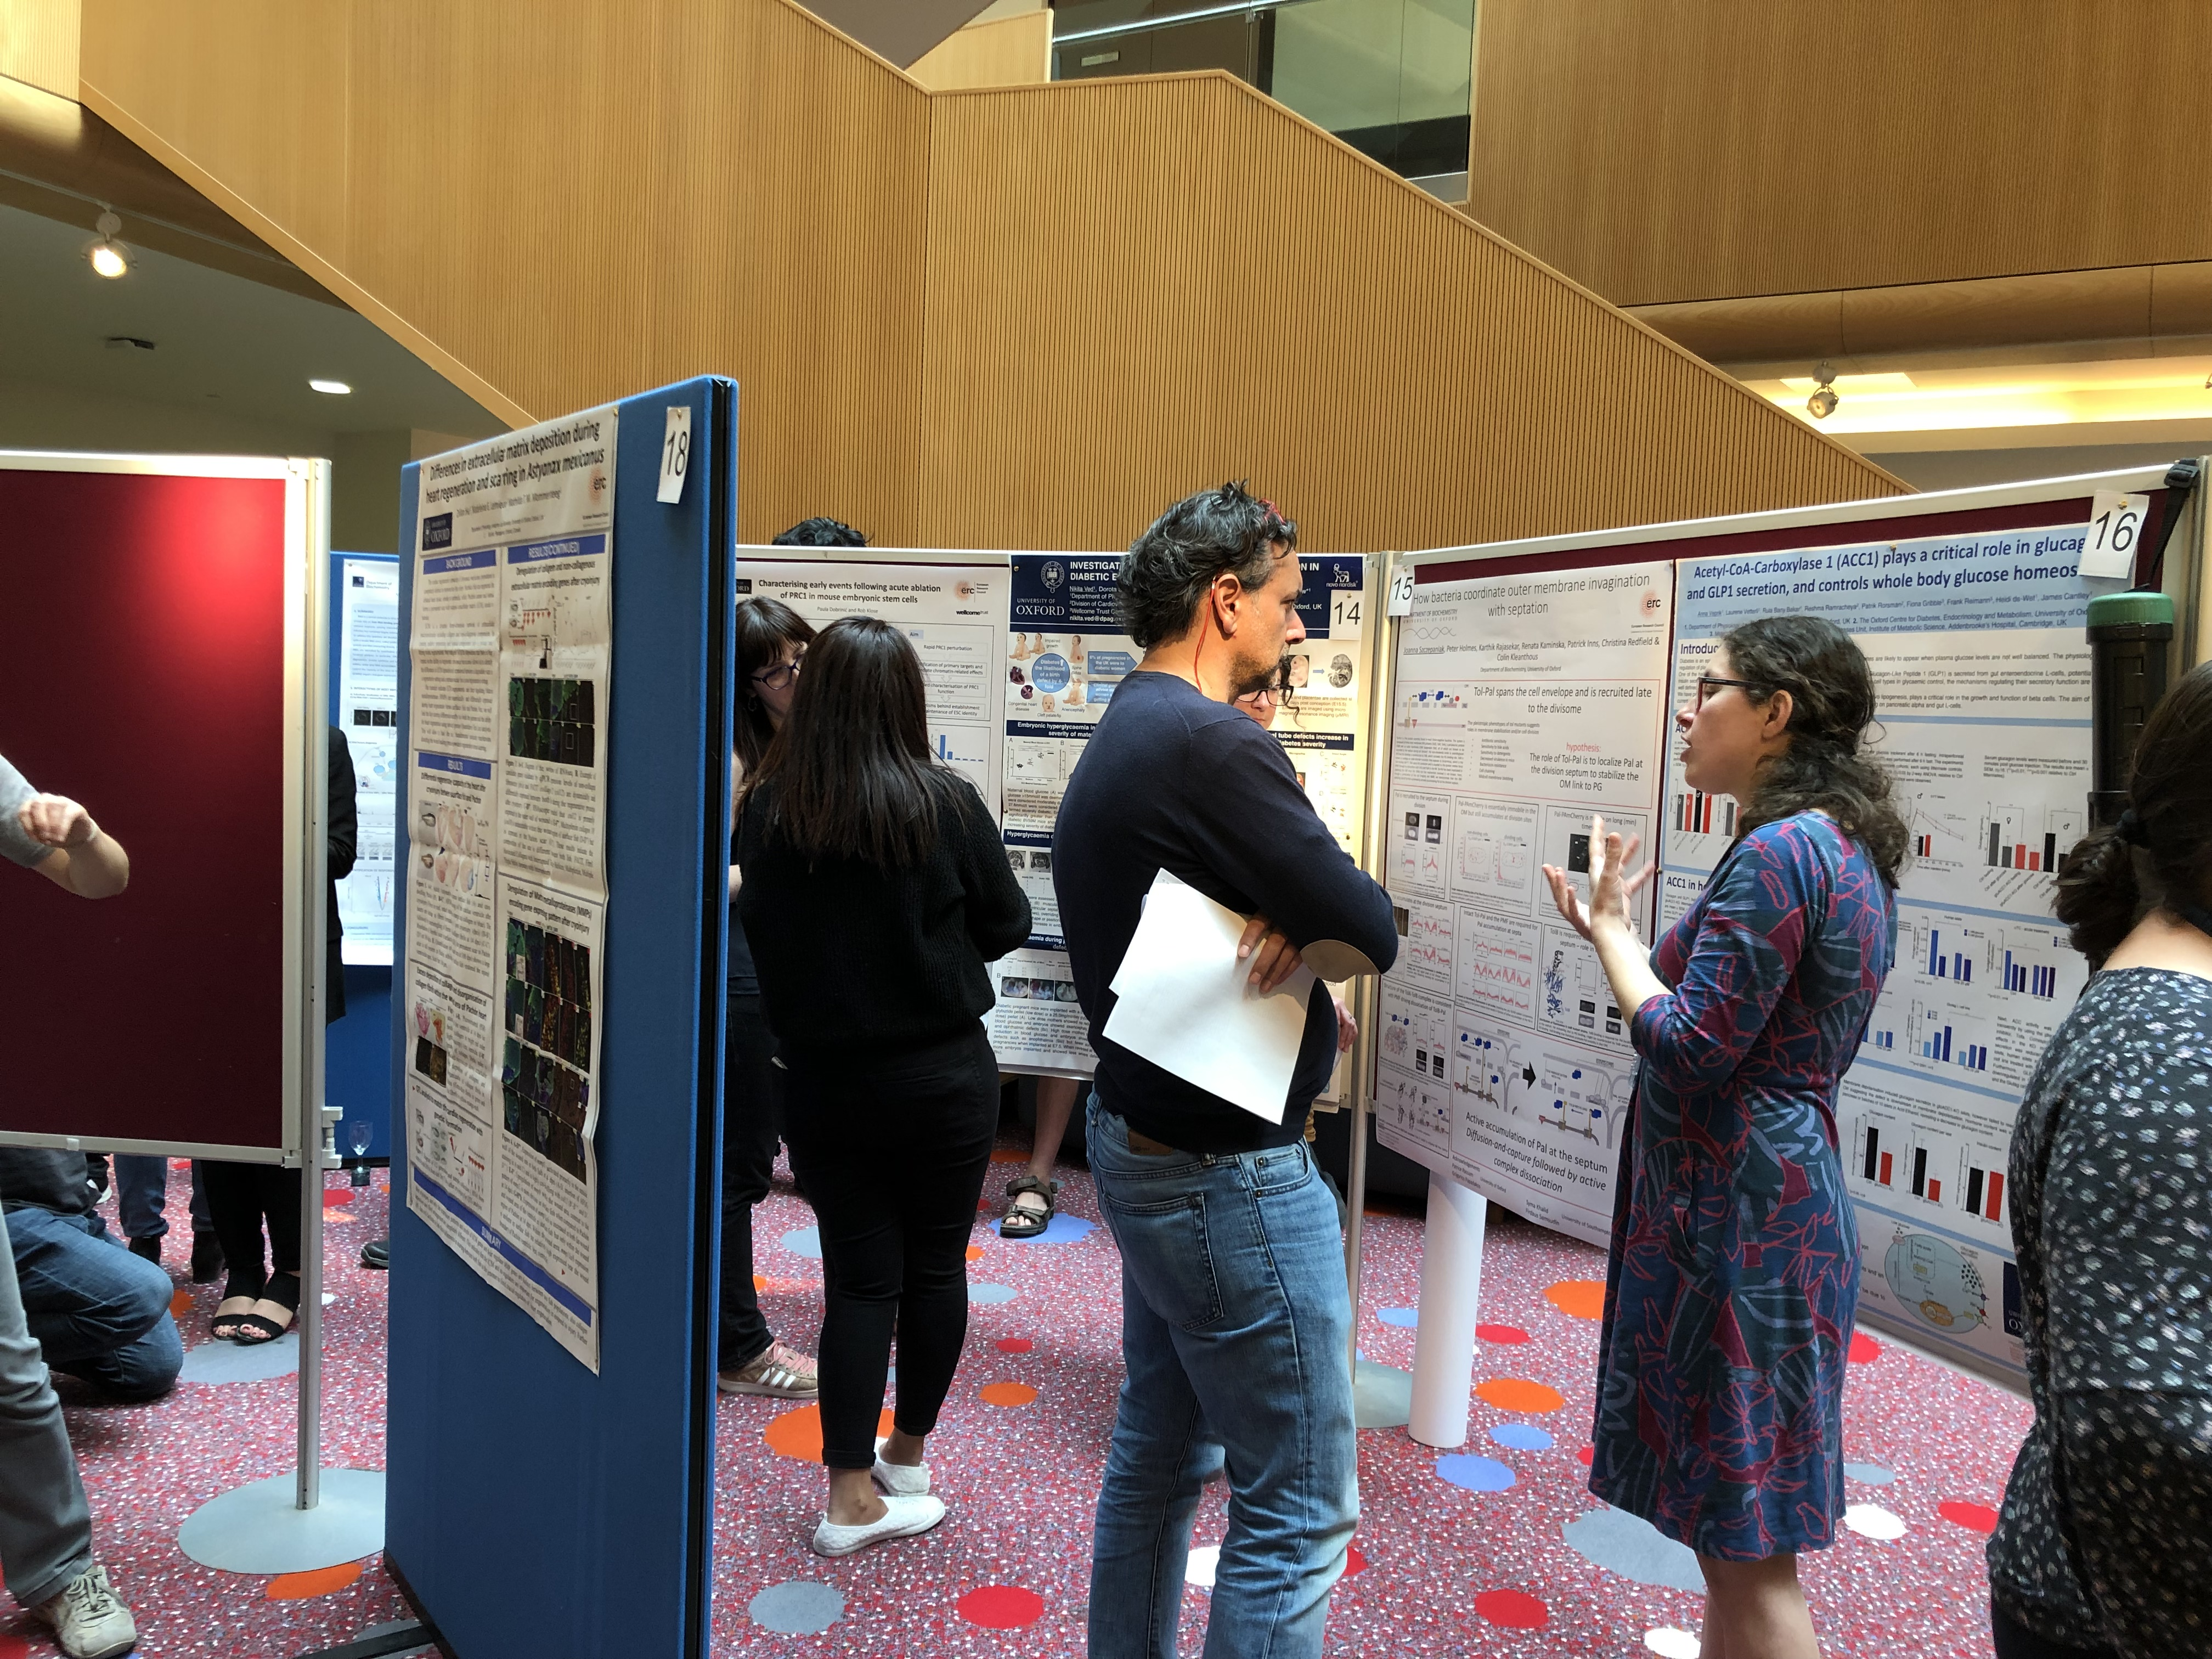 A postdoc explains her poster to a fellow researcher with others doing the same in the background.